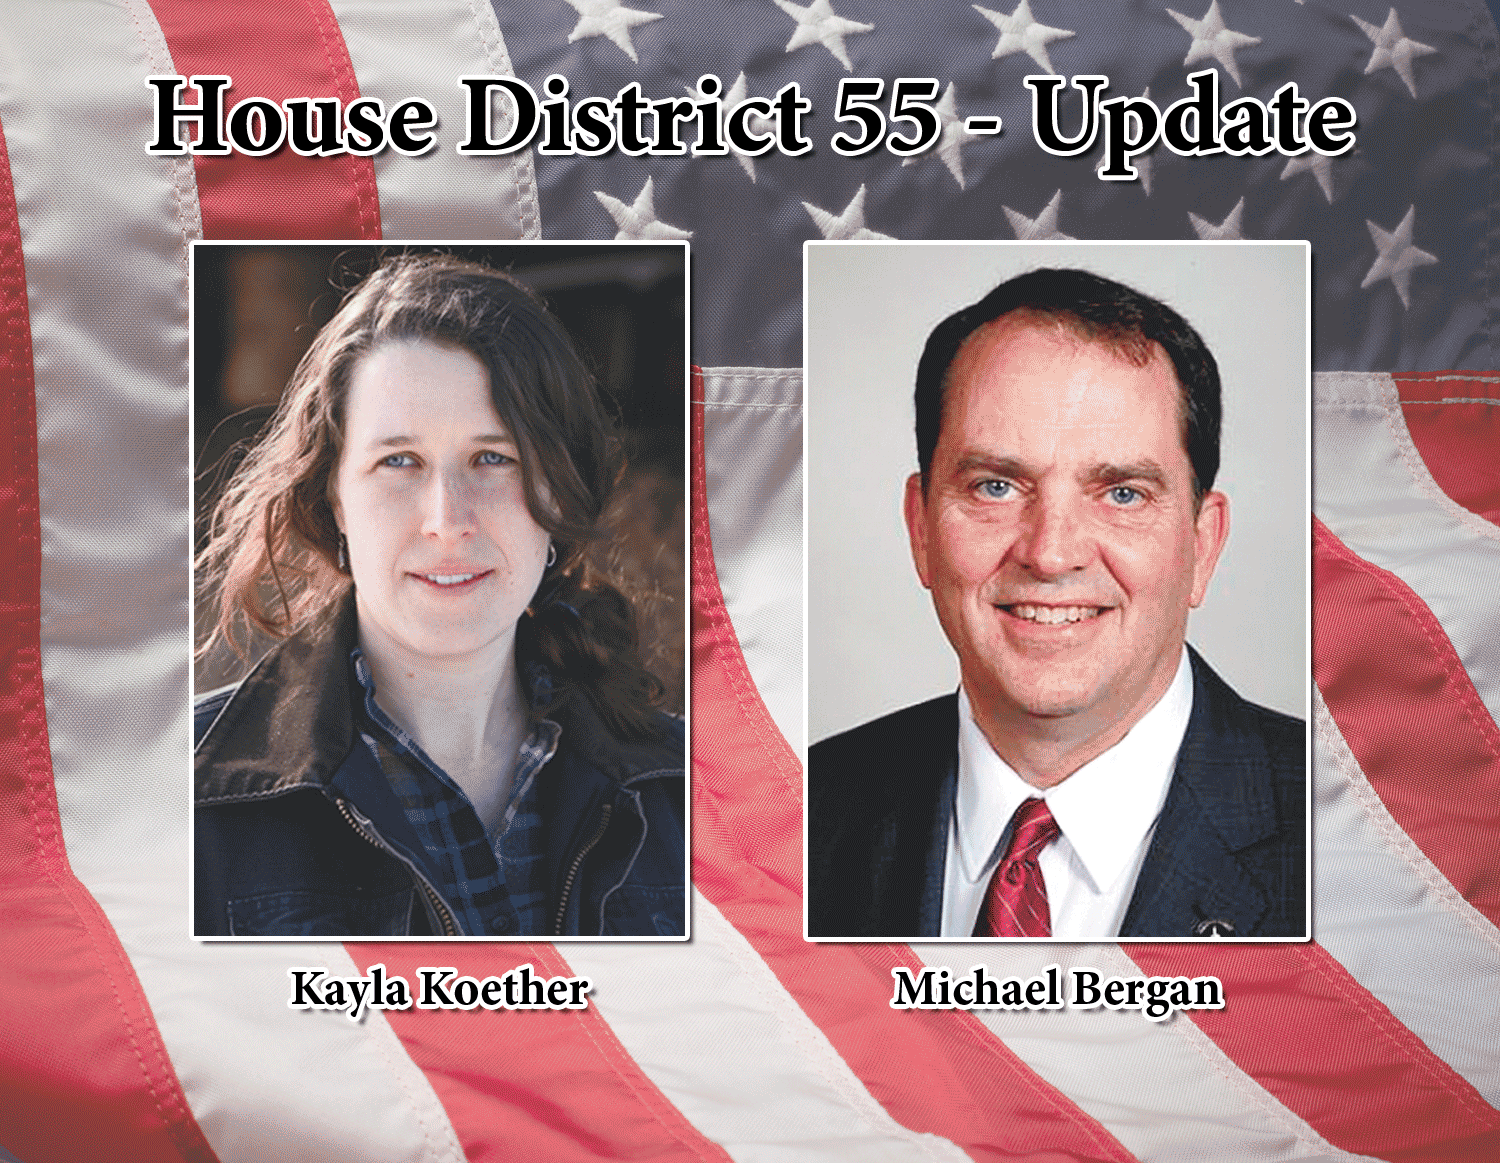 Bergan leads by seven votes by Chris DeBack	cdeback@fayettecountynewspapers.com On Tuesday, Nov. 6, the waters got a little muddier in the race for Iowa House District 55. Incumbent Republican Michael Bergan leads Democratic challenger Kayla Koether by seven votes...